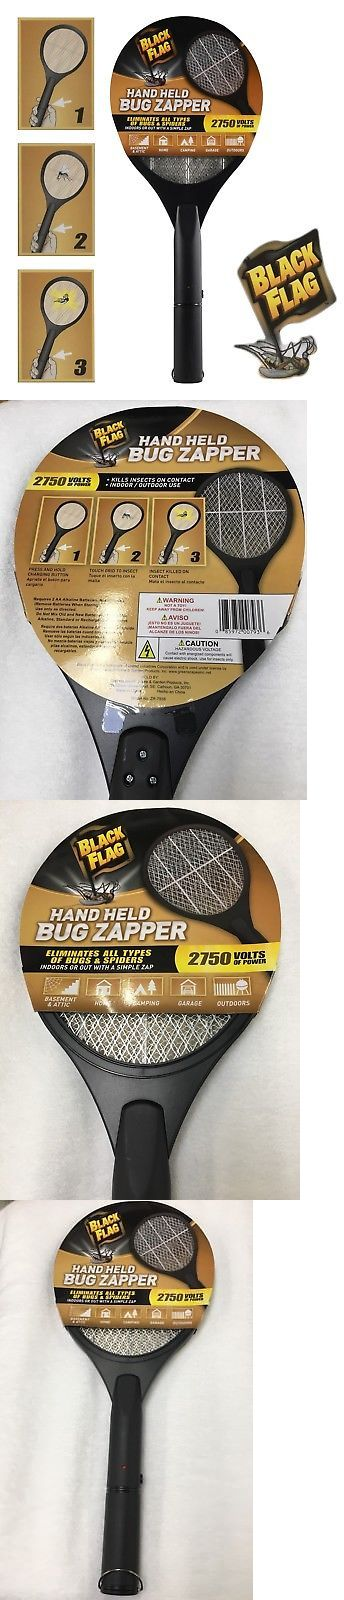 Pin on Insect Zappers 181040